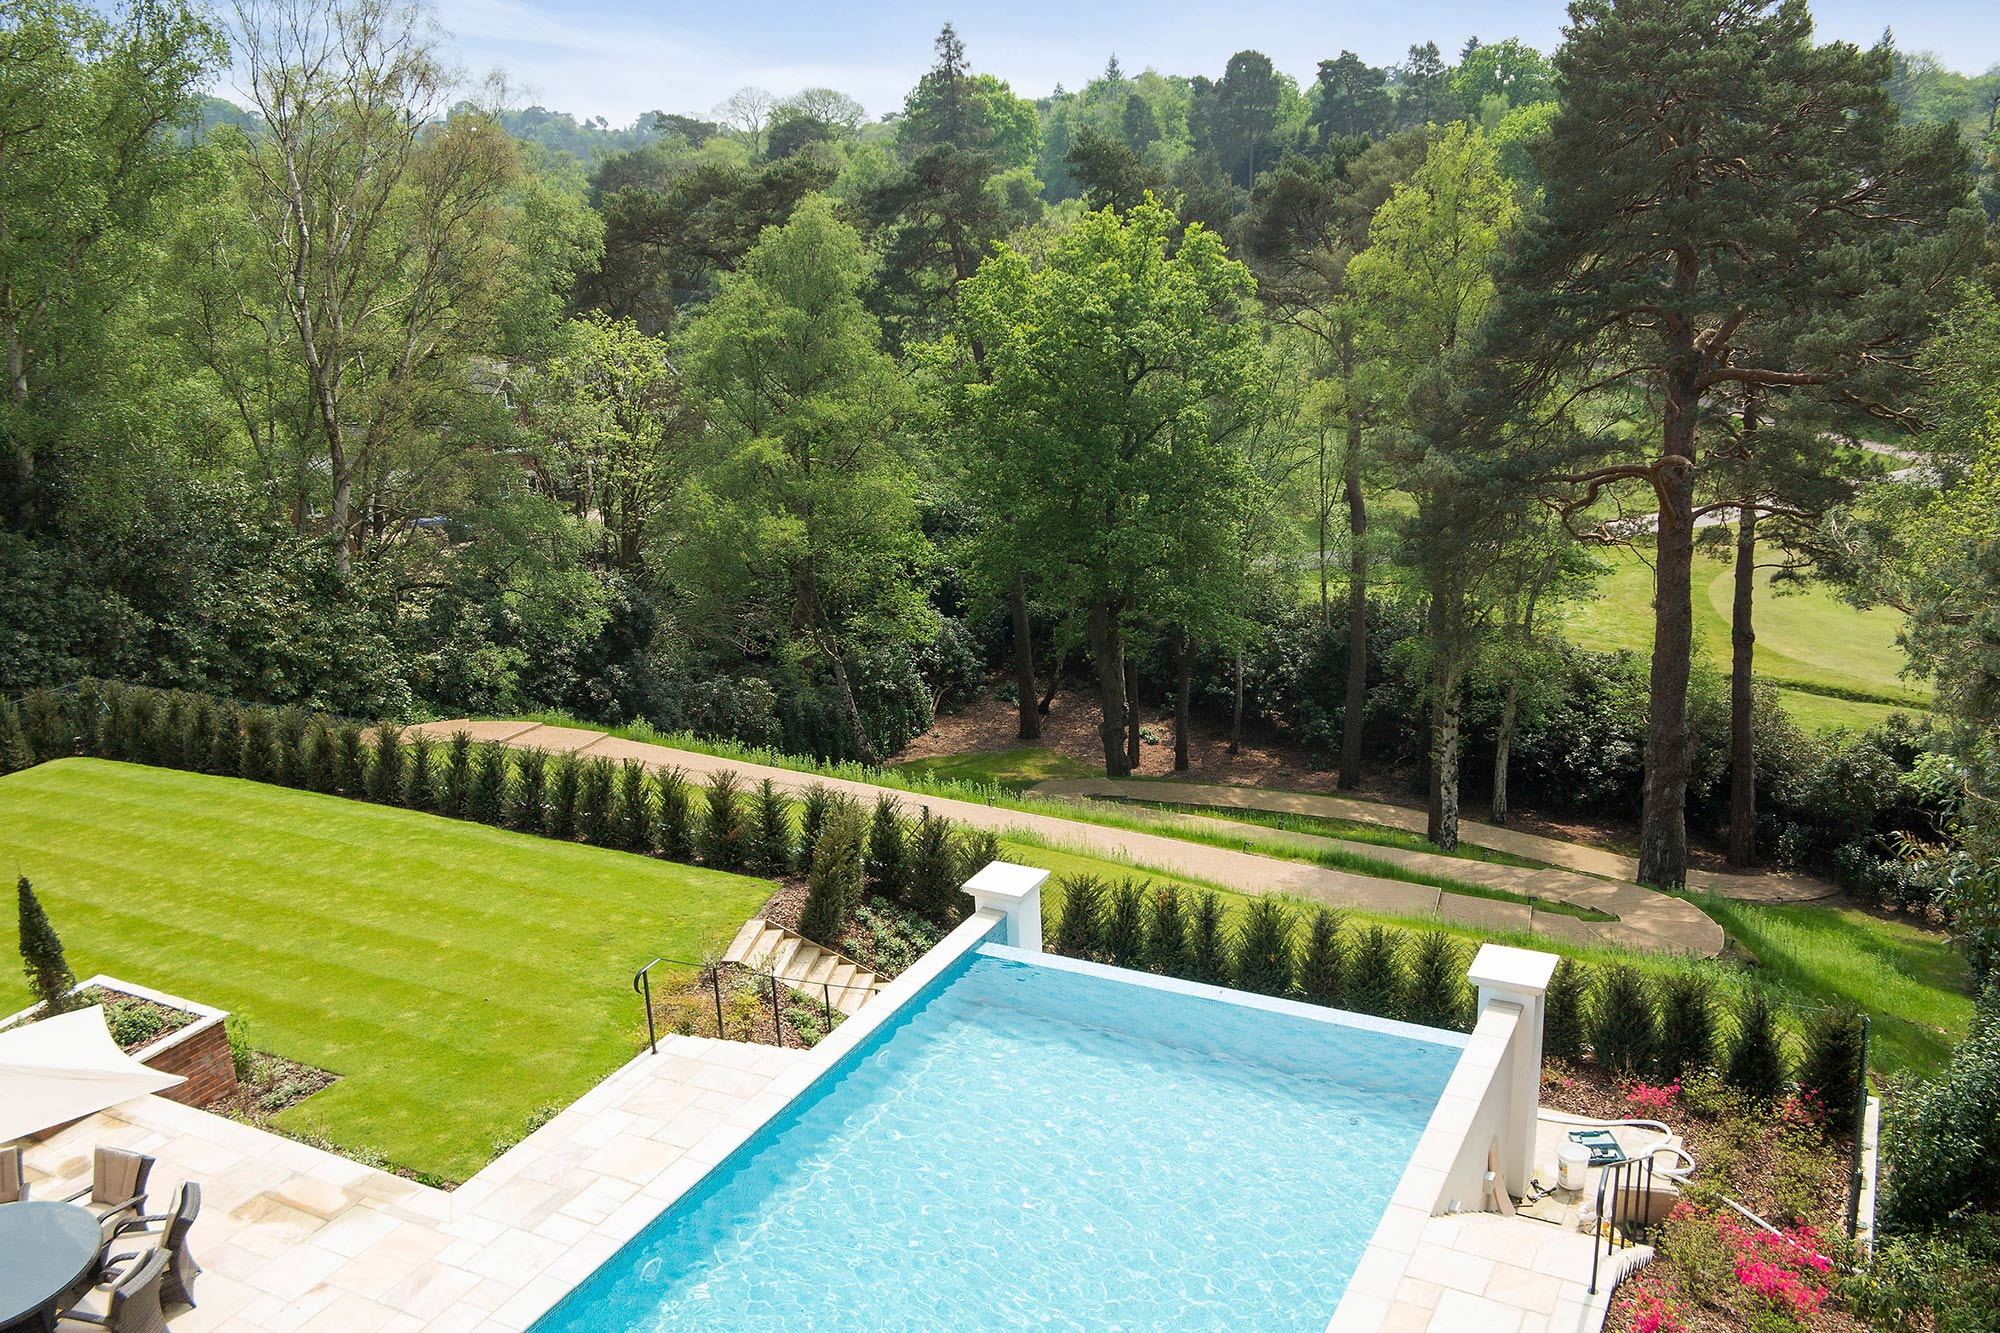 Luxury House With Swimming Pool St Georges Hill Octagon Properties Weybridge Kt13 0lx